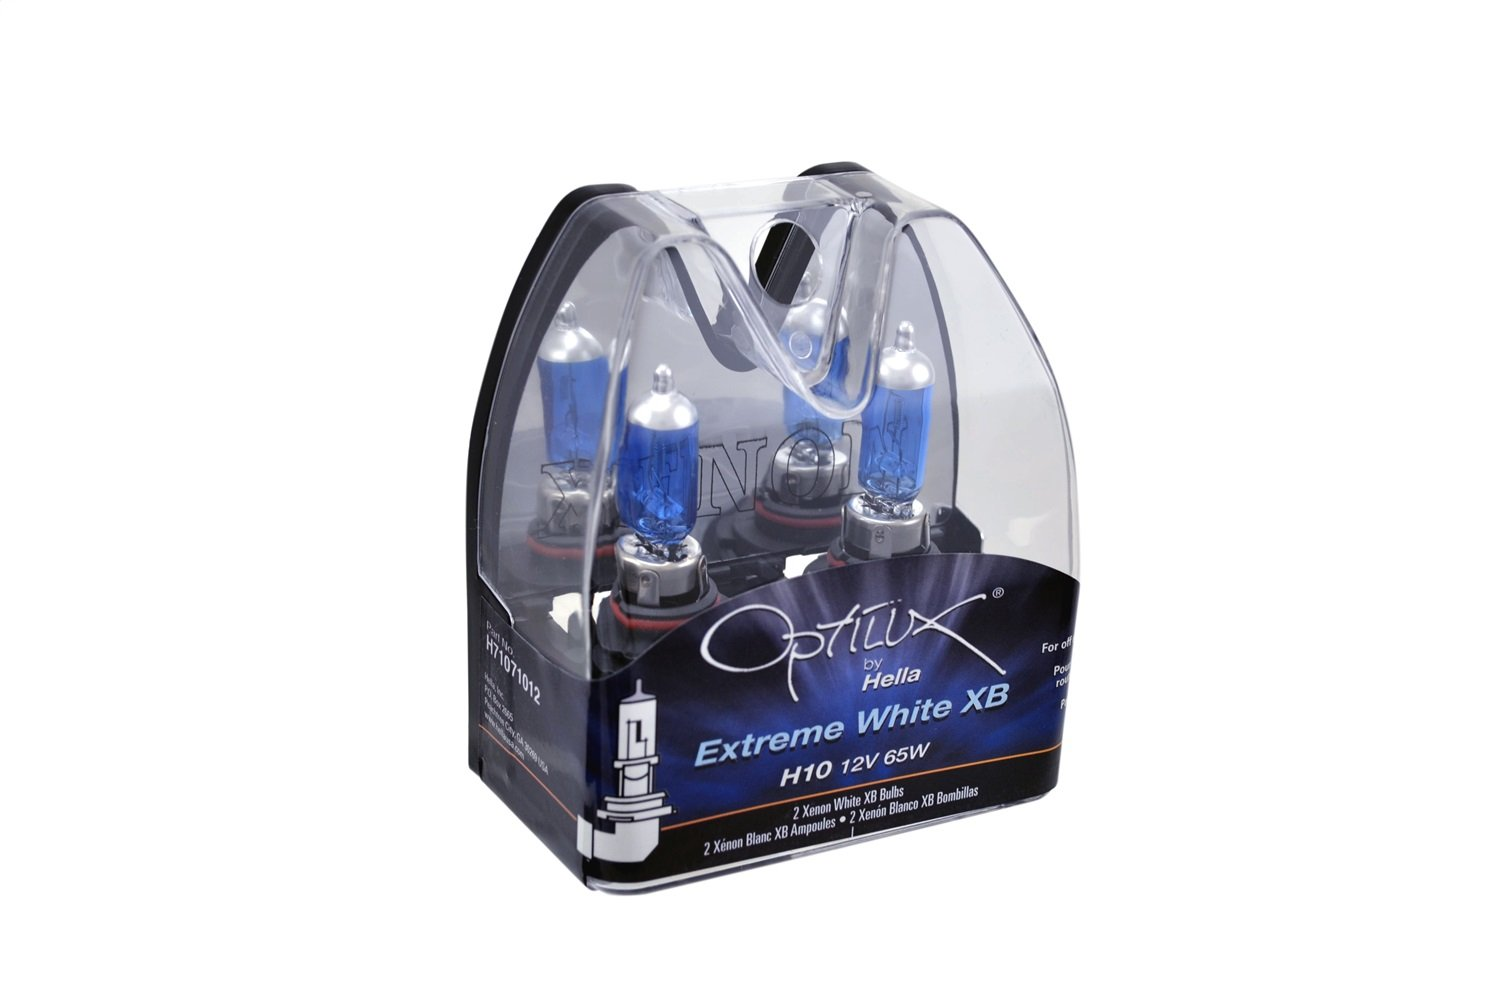 Amazon.com: HELLA H71071012 Optilux XB Series H10 Xenon White Halogen Bulbs, 12V, 65W 2 Pack: Automotive